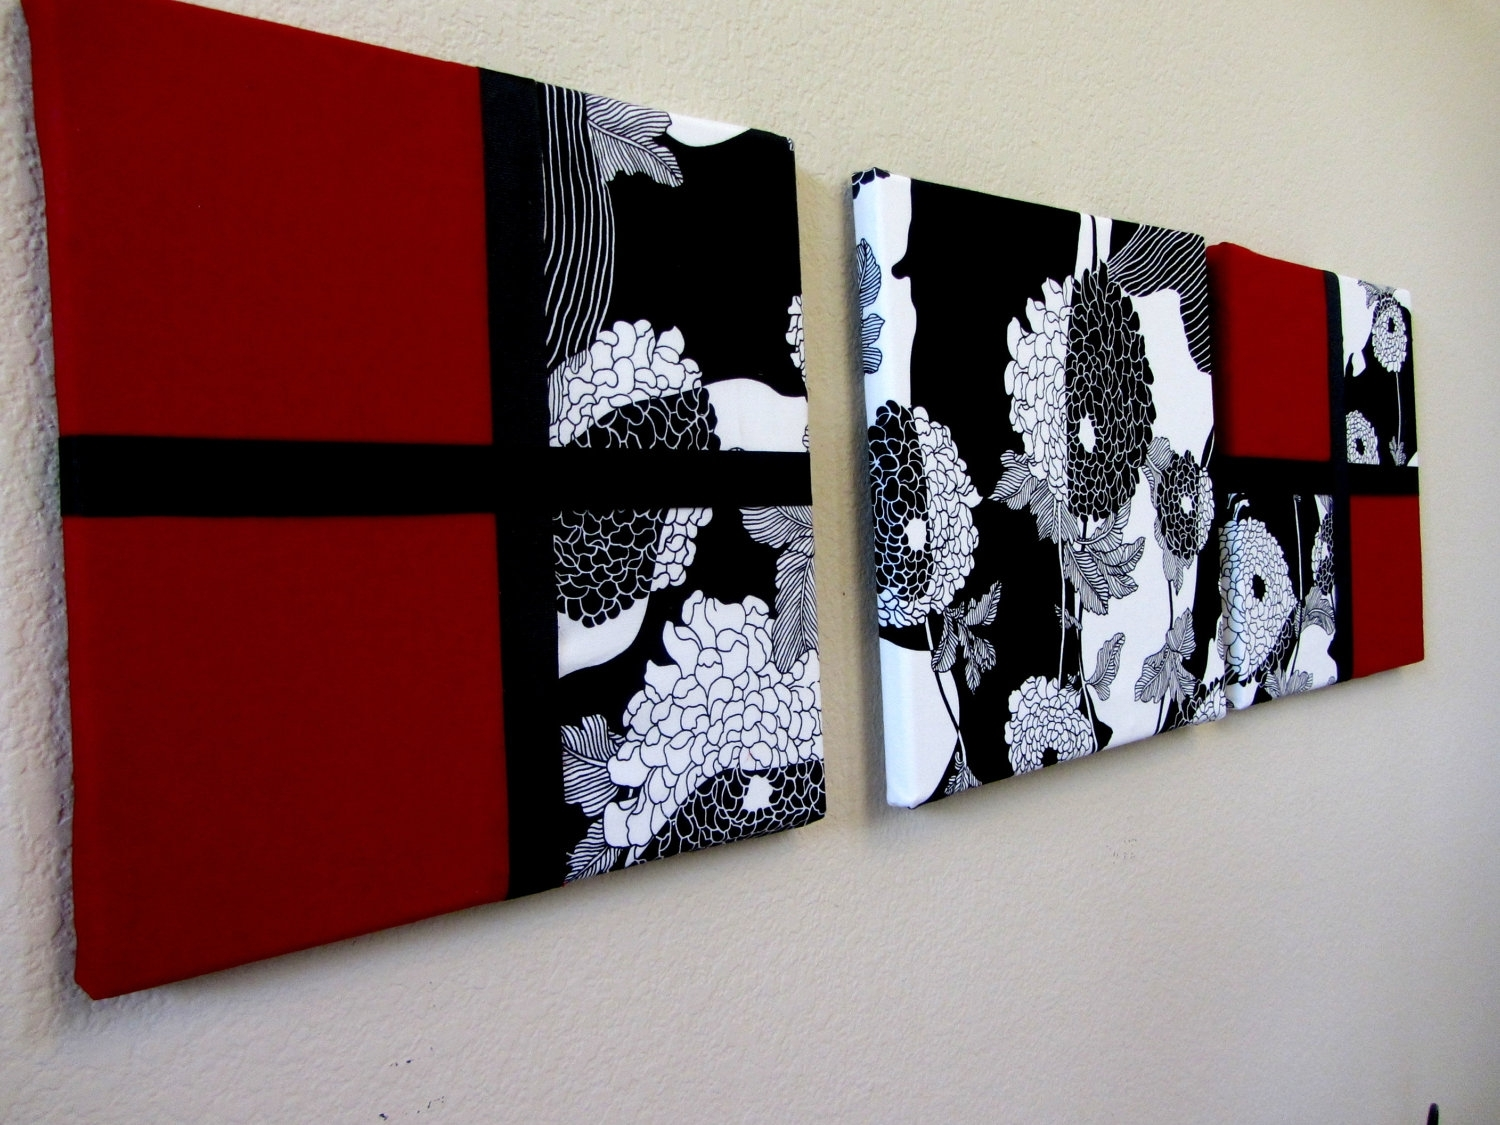 Admirable Wall Art Oversized Abstract Wall Art Black For Scenario In Most Recent Red Fabric Wall Art (View 5 of 15)